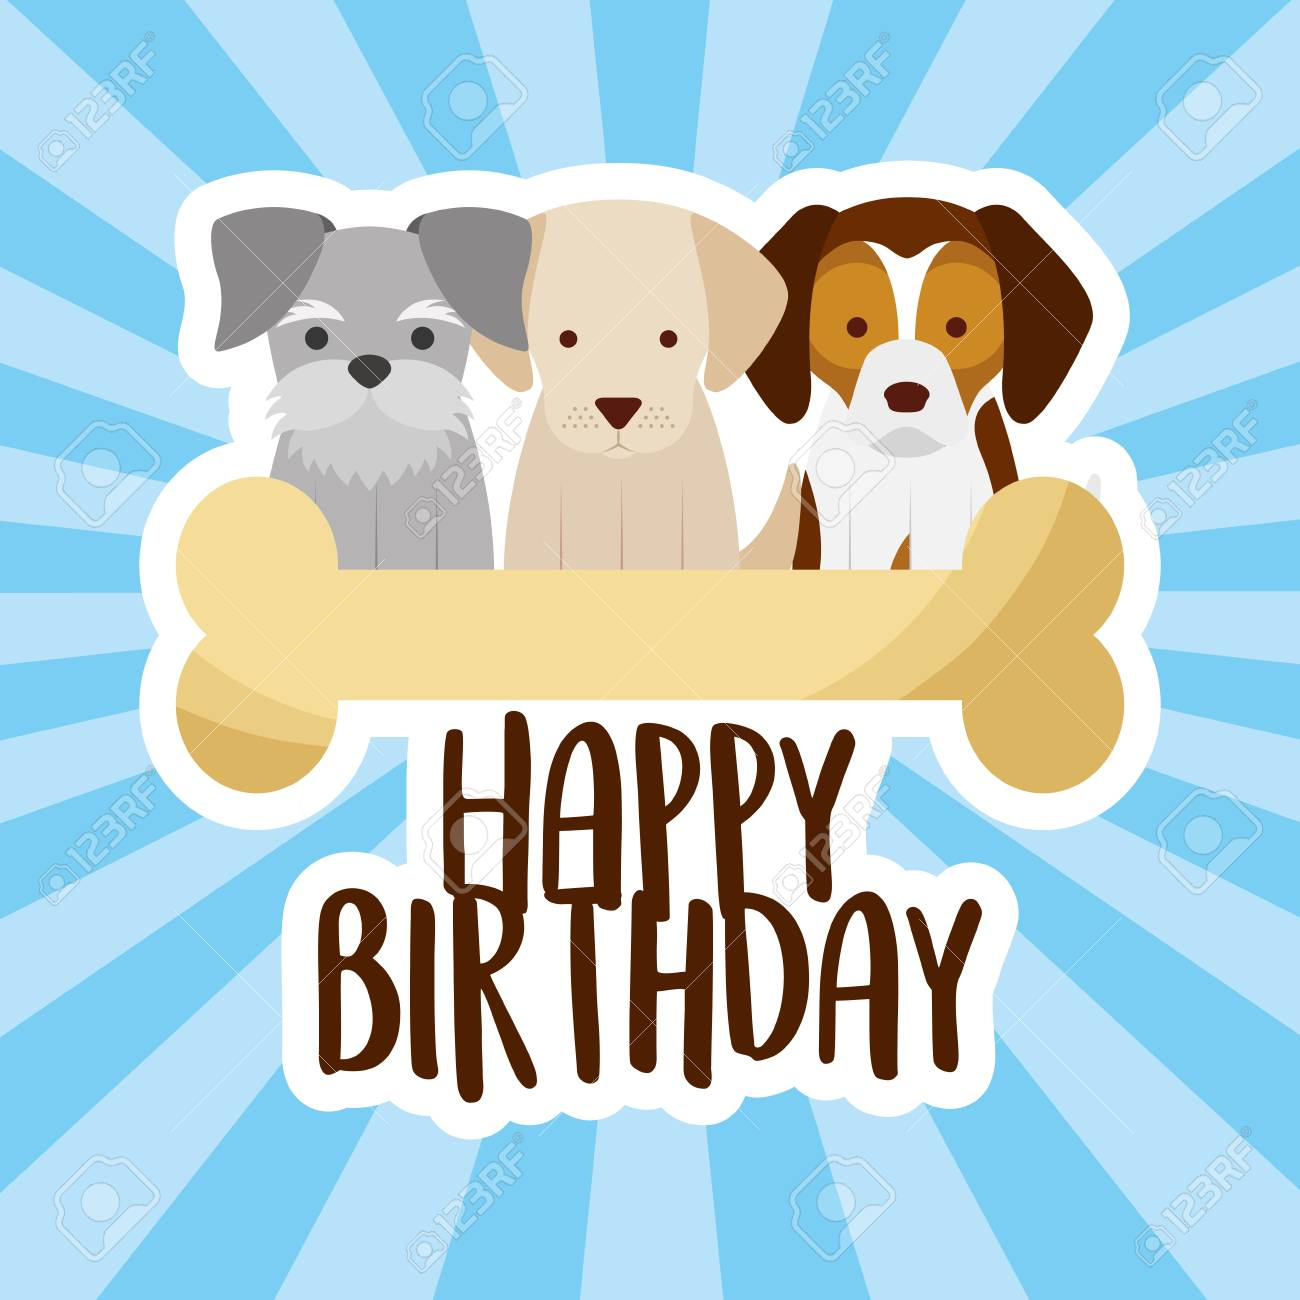 Happy Birthday Card Three Dogs And Bone Vector Illustration Stock